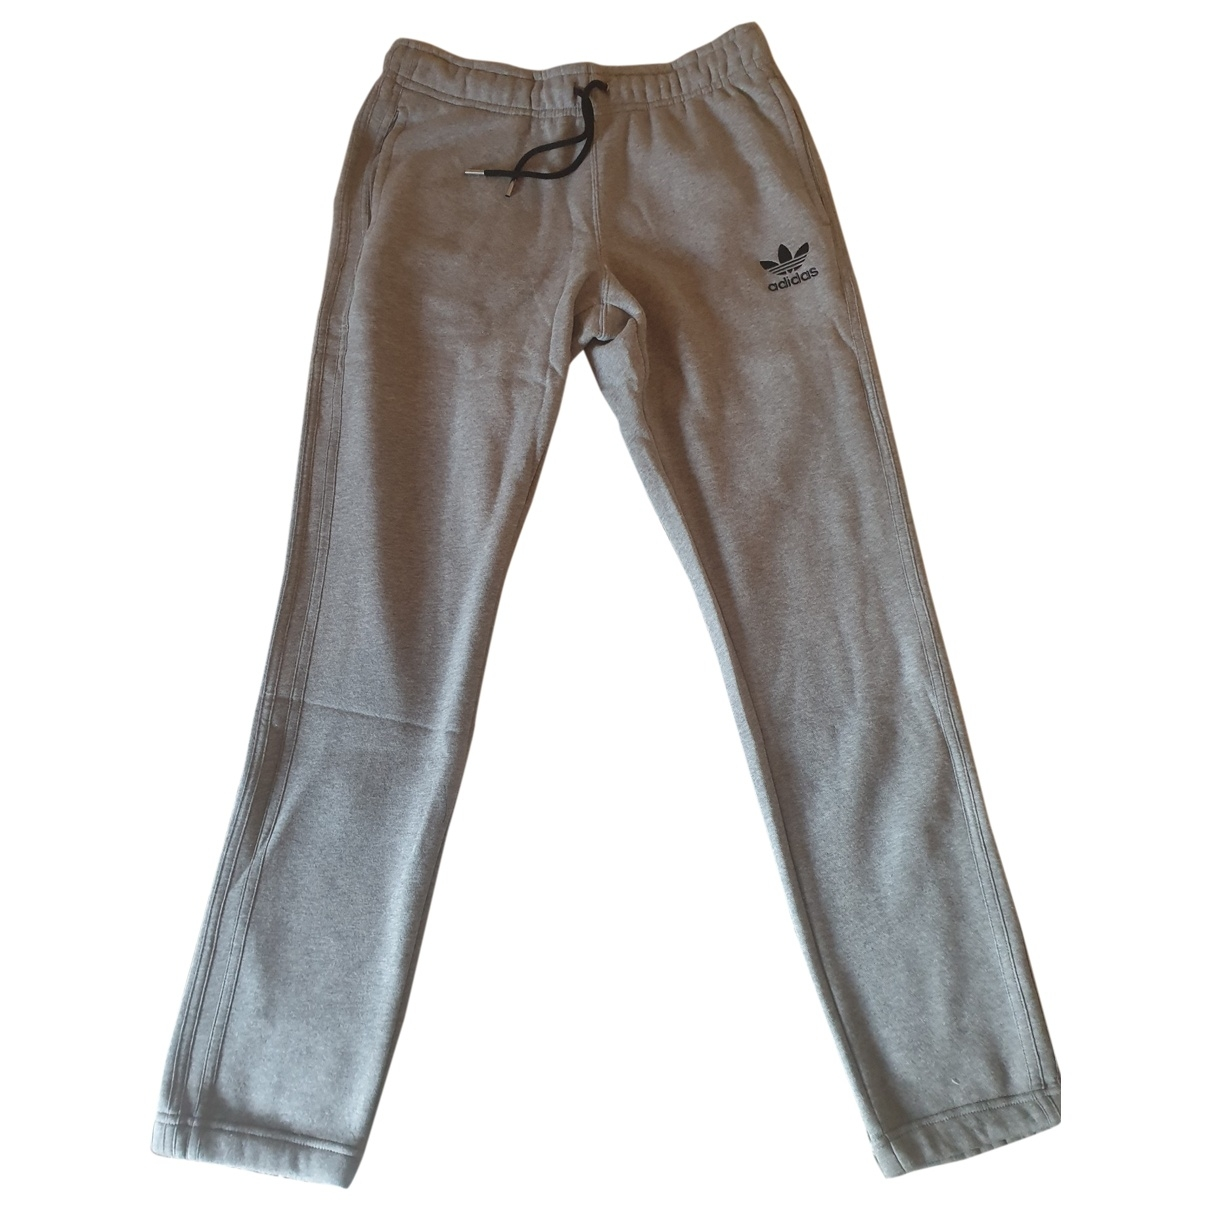 Adidas \N Grey Cotton Trousers for Men L International